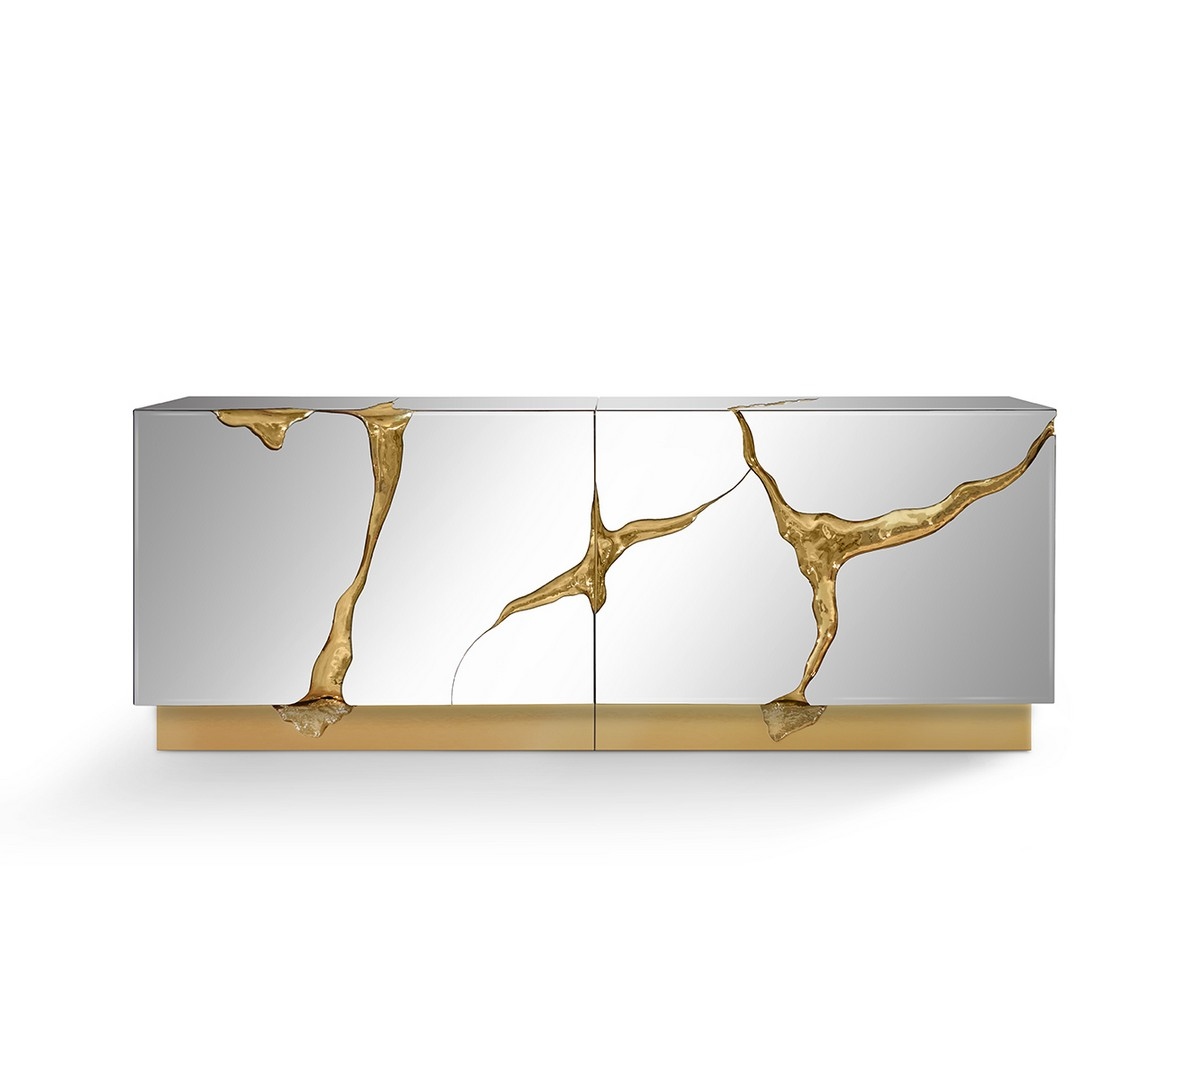 Art Furniture: Groundbreaking Sideboards For a New Living Room